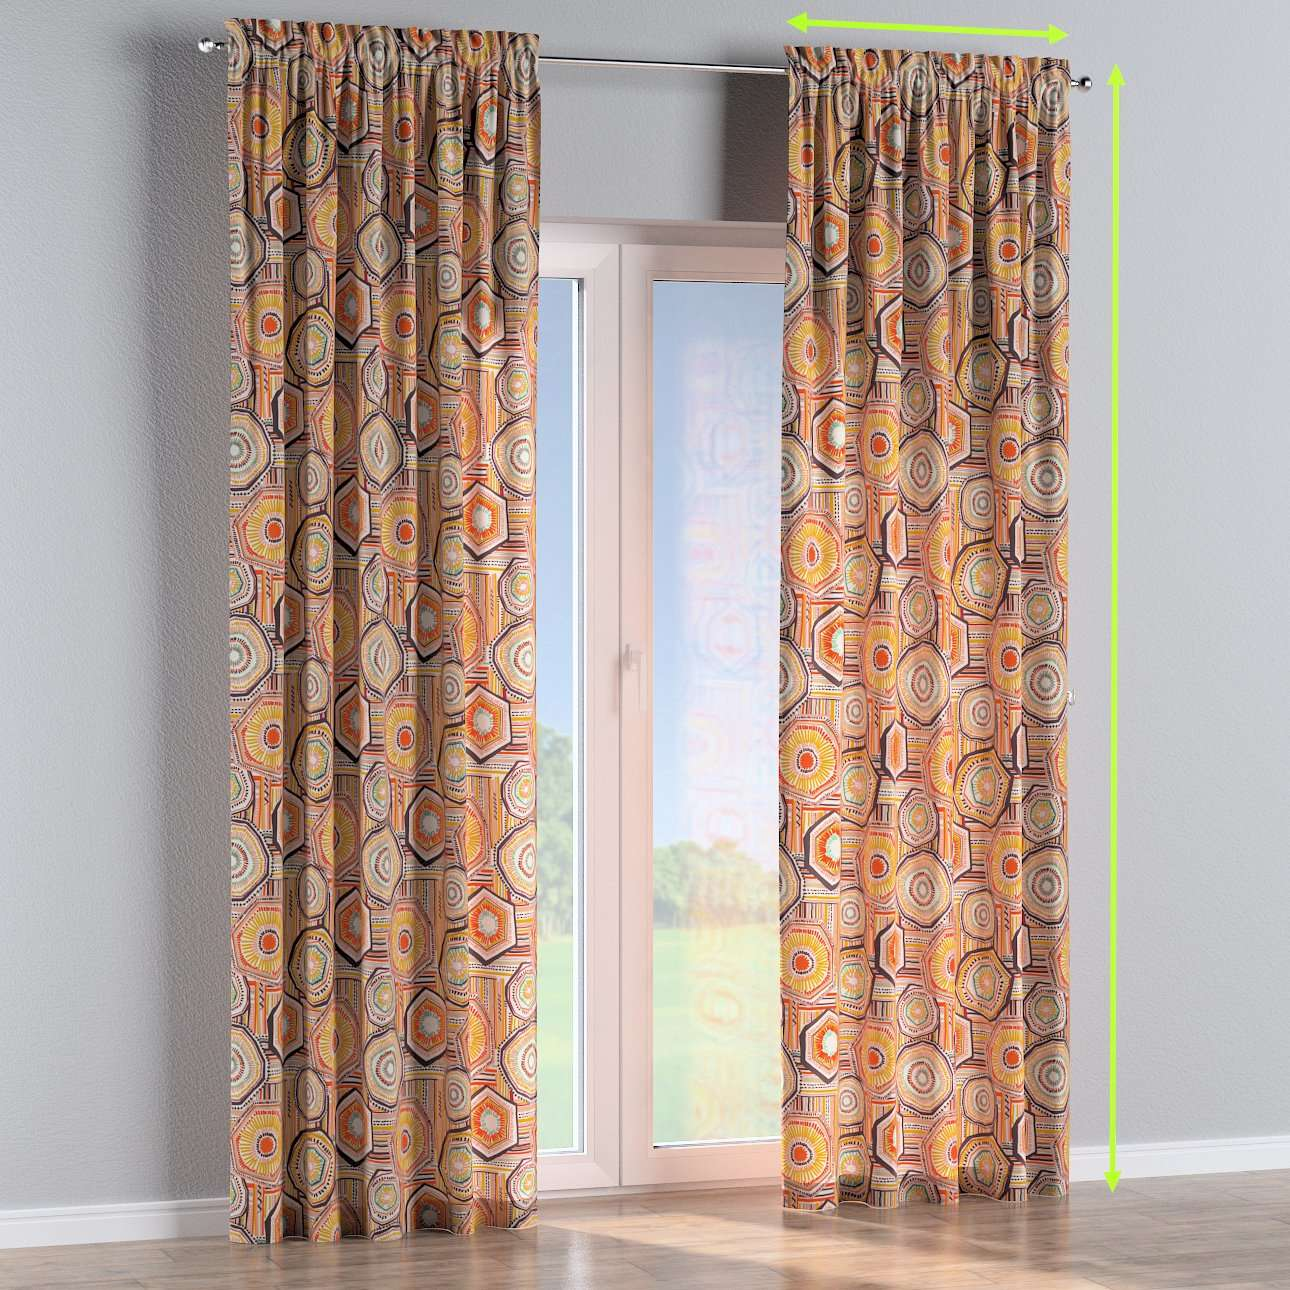 Slot and frill lined curtains in collection New Art, fabric: 141-55